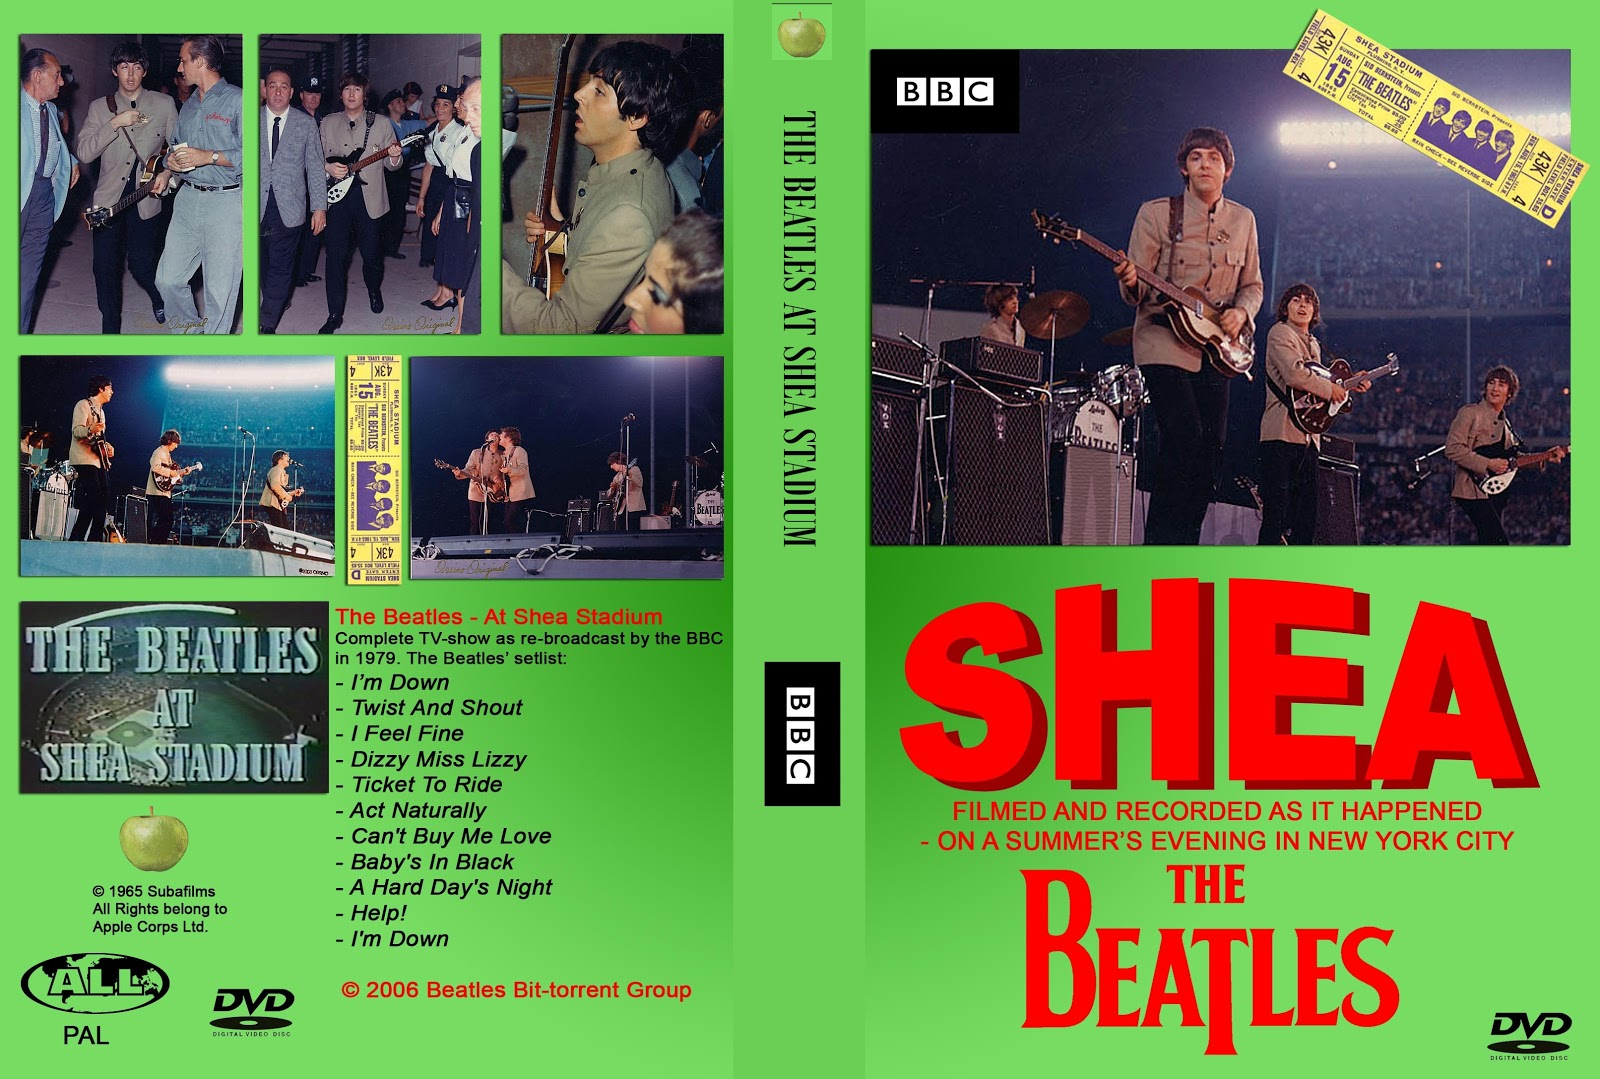 T U B E The Beatles 1965 08 15 New York Ny Dvdfull Pro Shot